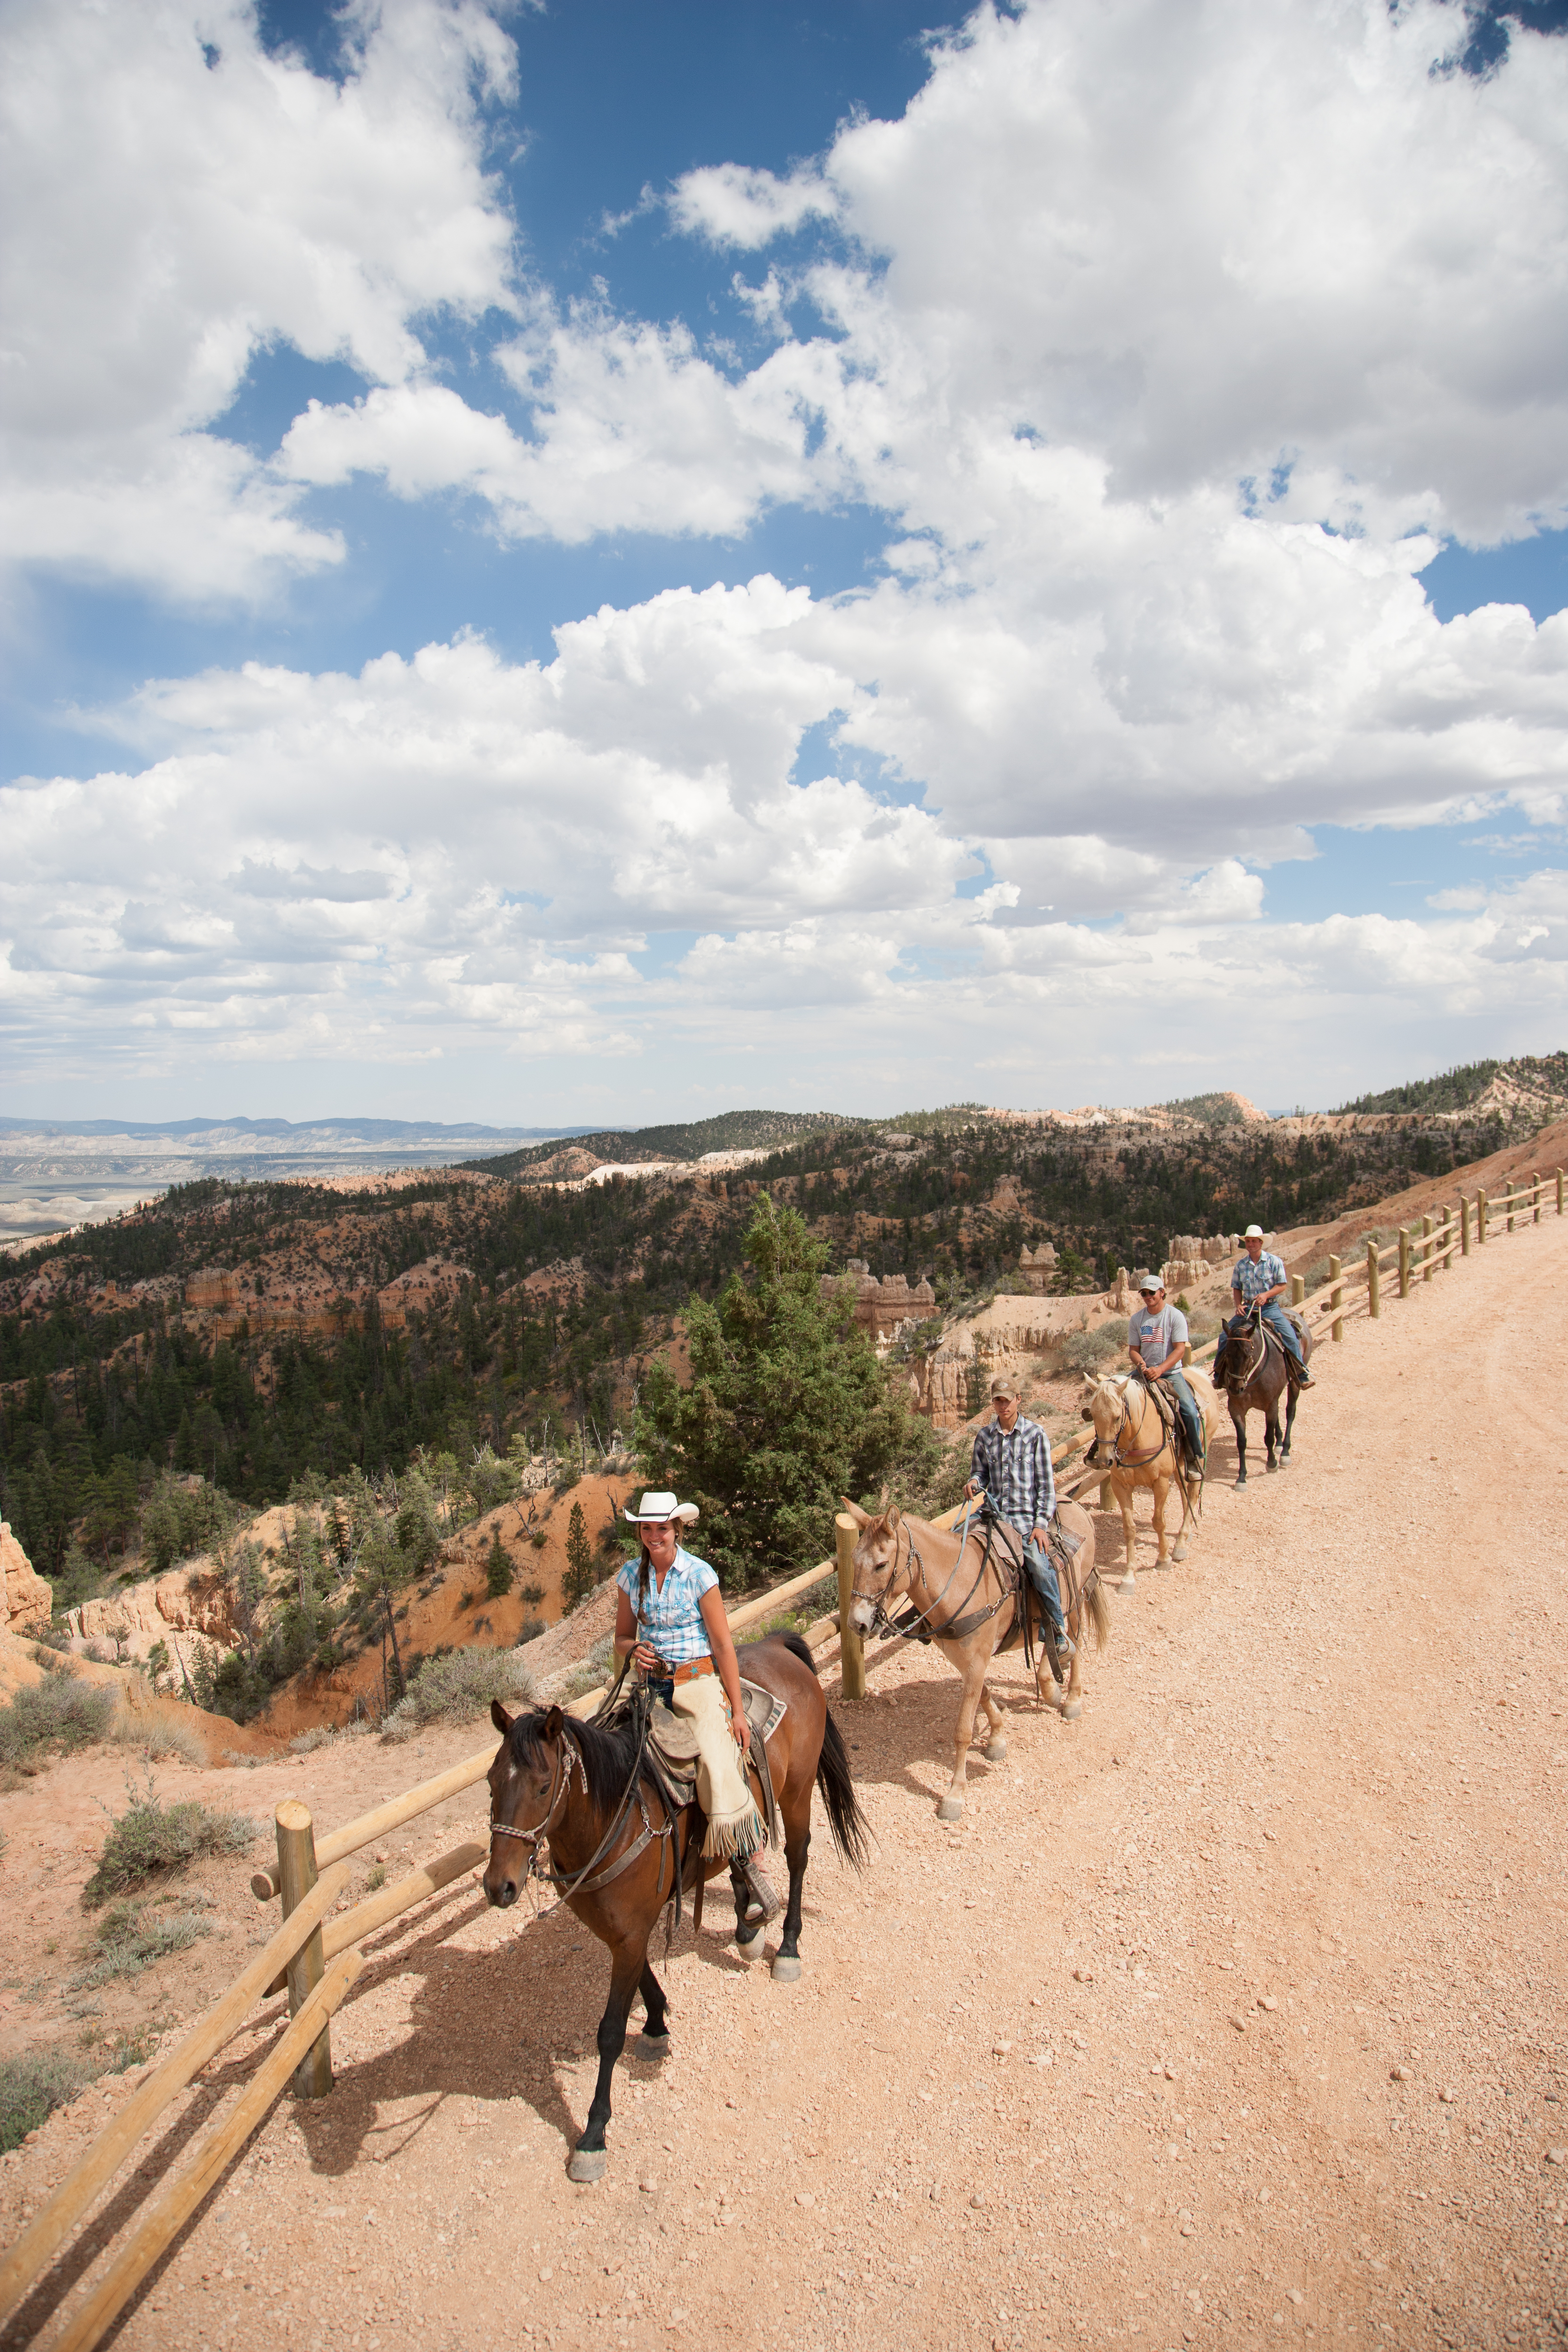 Horseback riding is among the activities available at Bryce Canyon National Park and Historic Ruby's Inn, Bryce Canyon City, Utah, date not specified | Photo courtesy of Ruby's Inn, St. George News